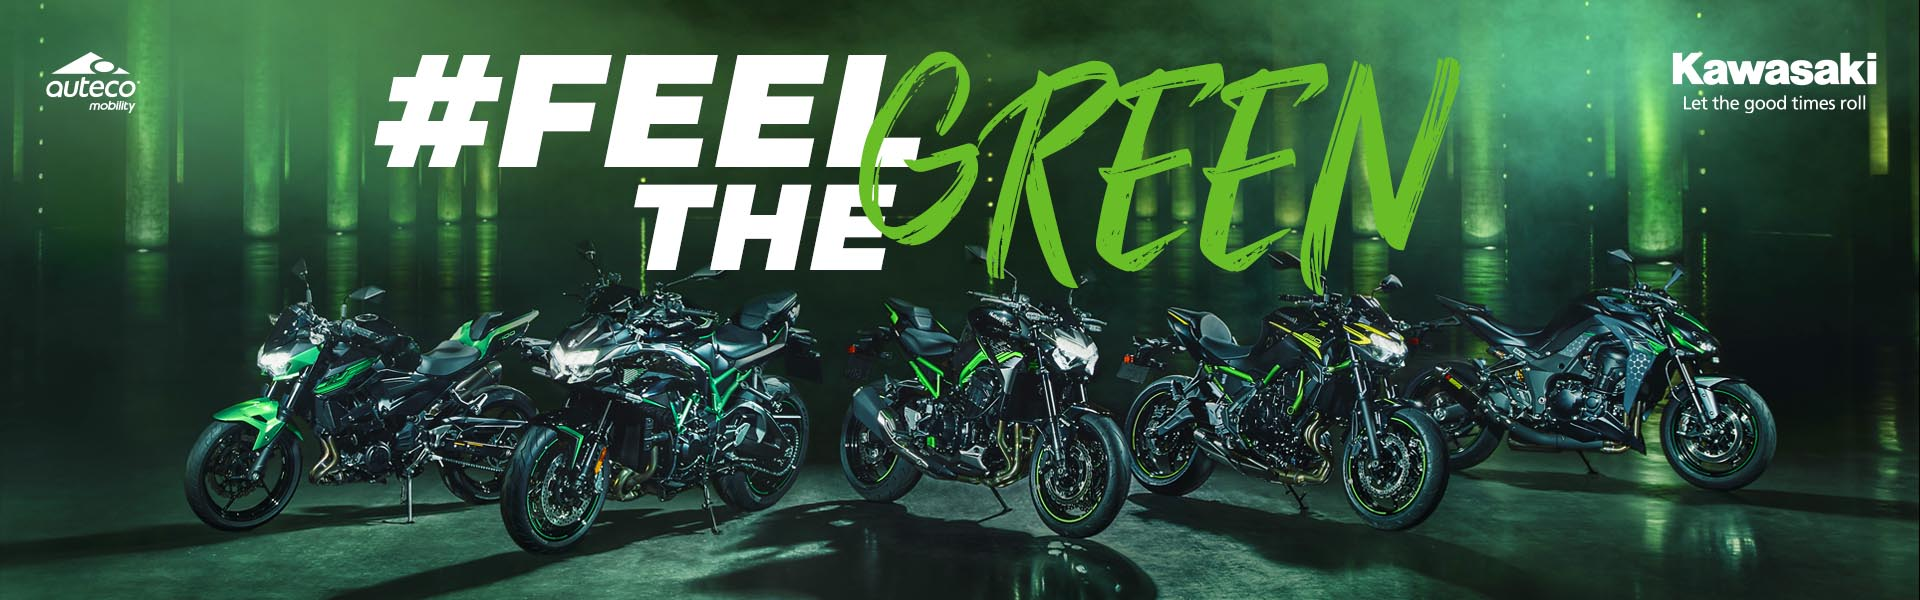 #FeelGreen - Kawasaki